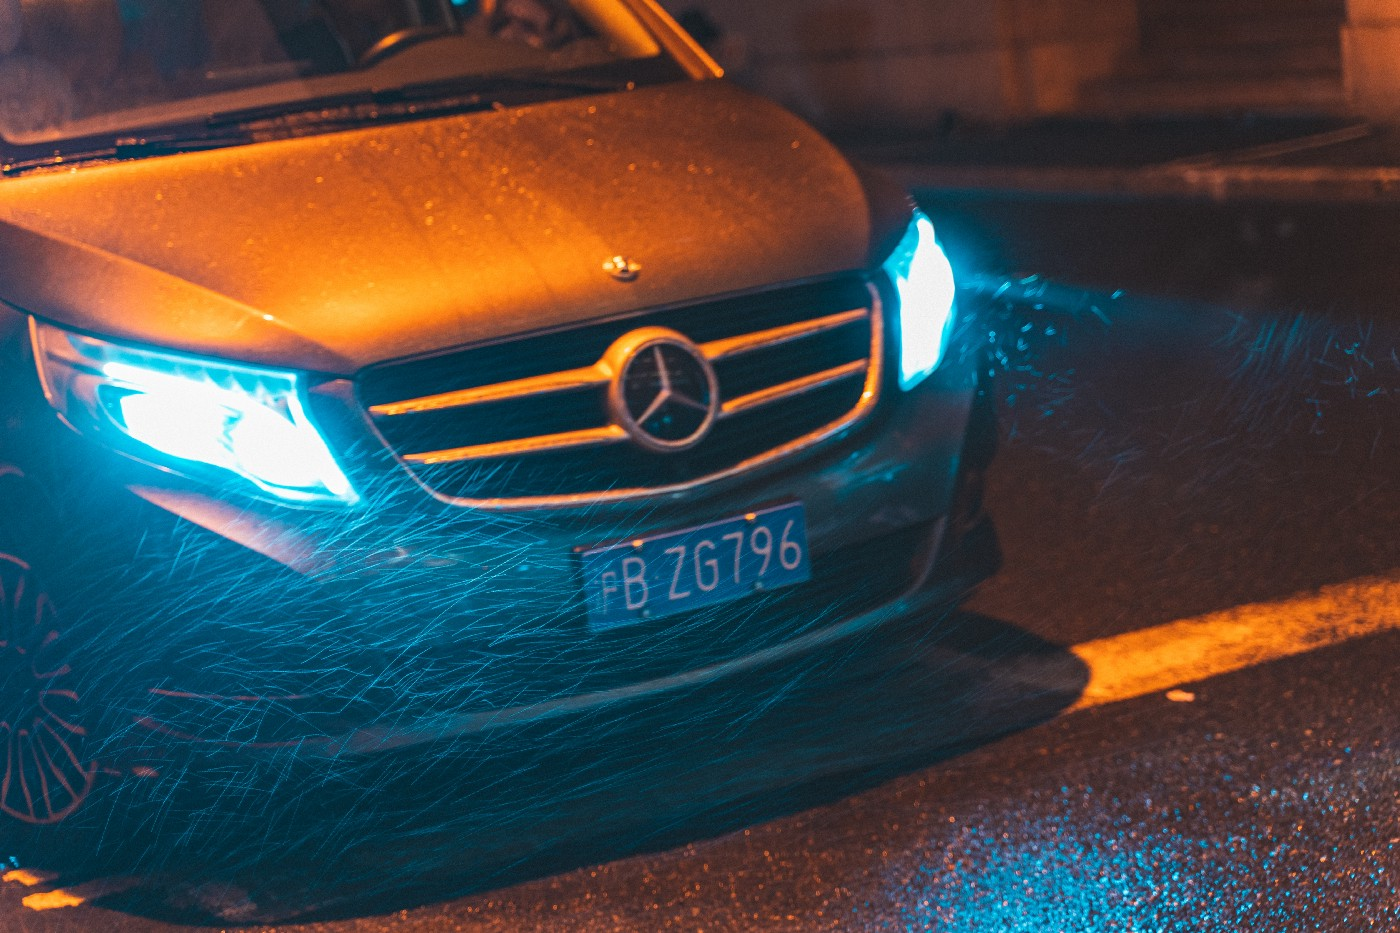 Photo of a Mercedes at night in the rain